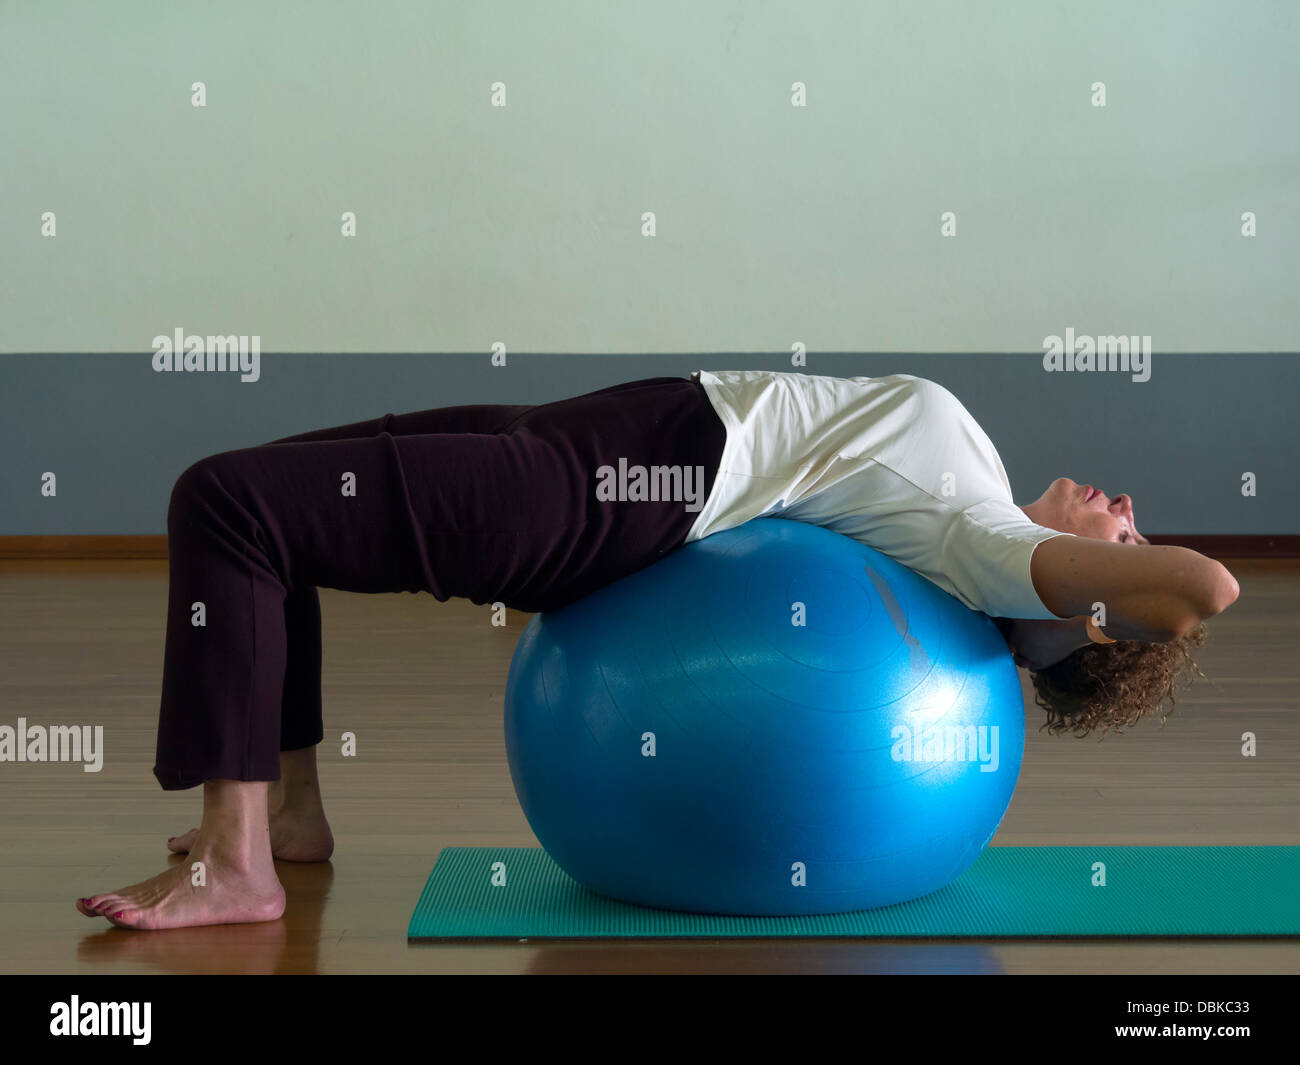 Woman doing Pilates exercise with ball - Stock Image